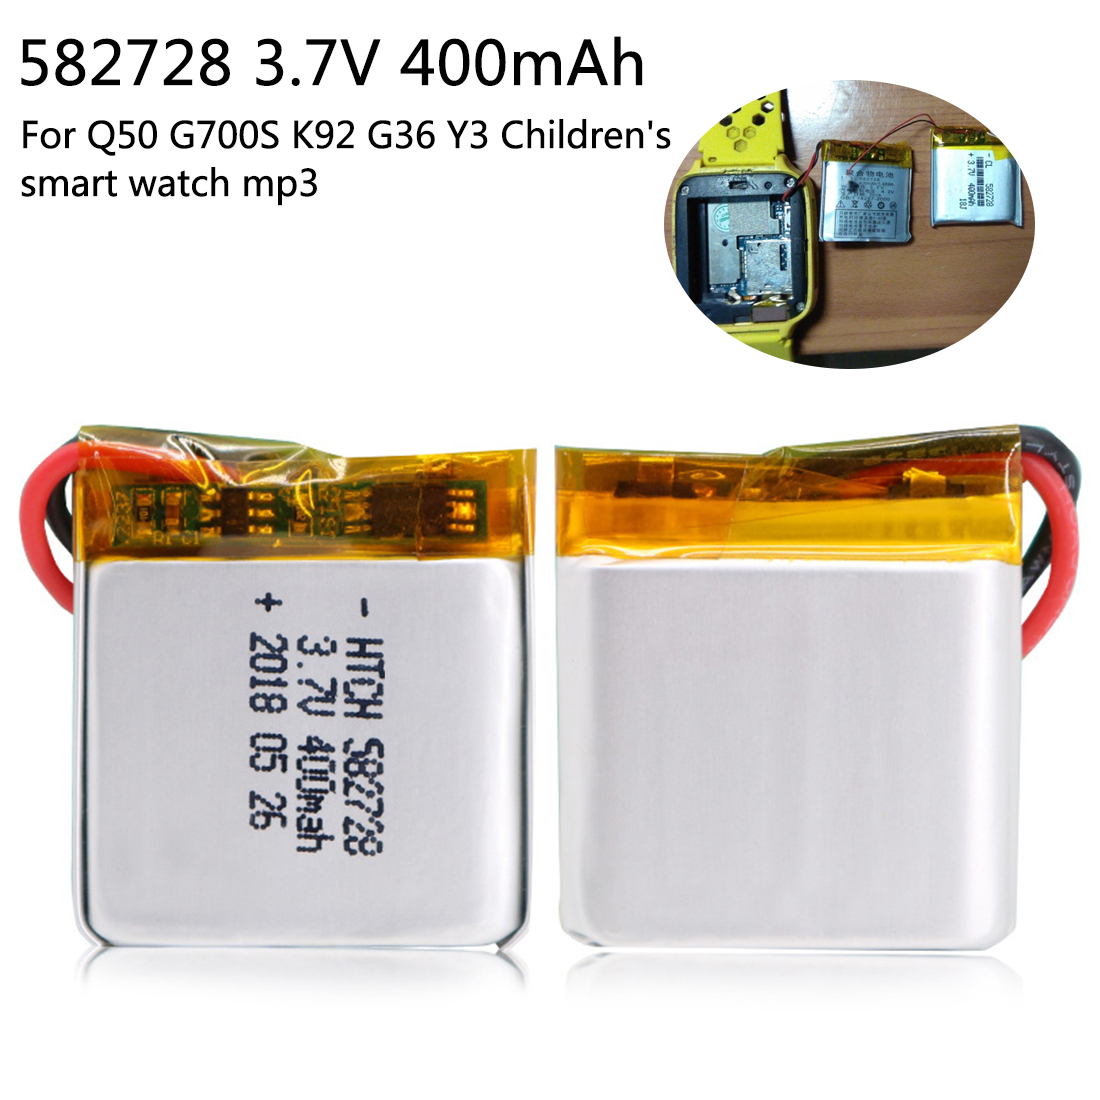 Replacement Batteries 582728 3.7v 400mah Rechargeable Li-polymer Li-ion Battery For Q50 G700s K92 G36 Y3 Childrens Smart Watch Mp3 Bluetooth Headset Batteries